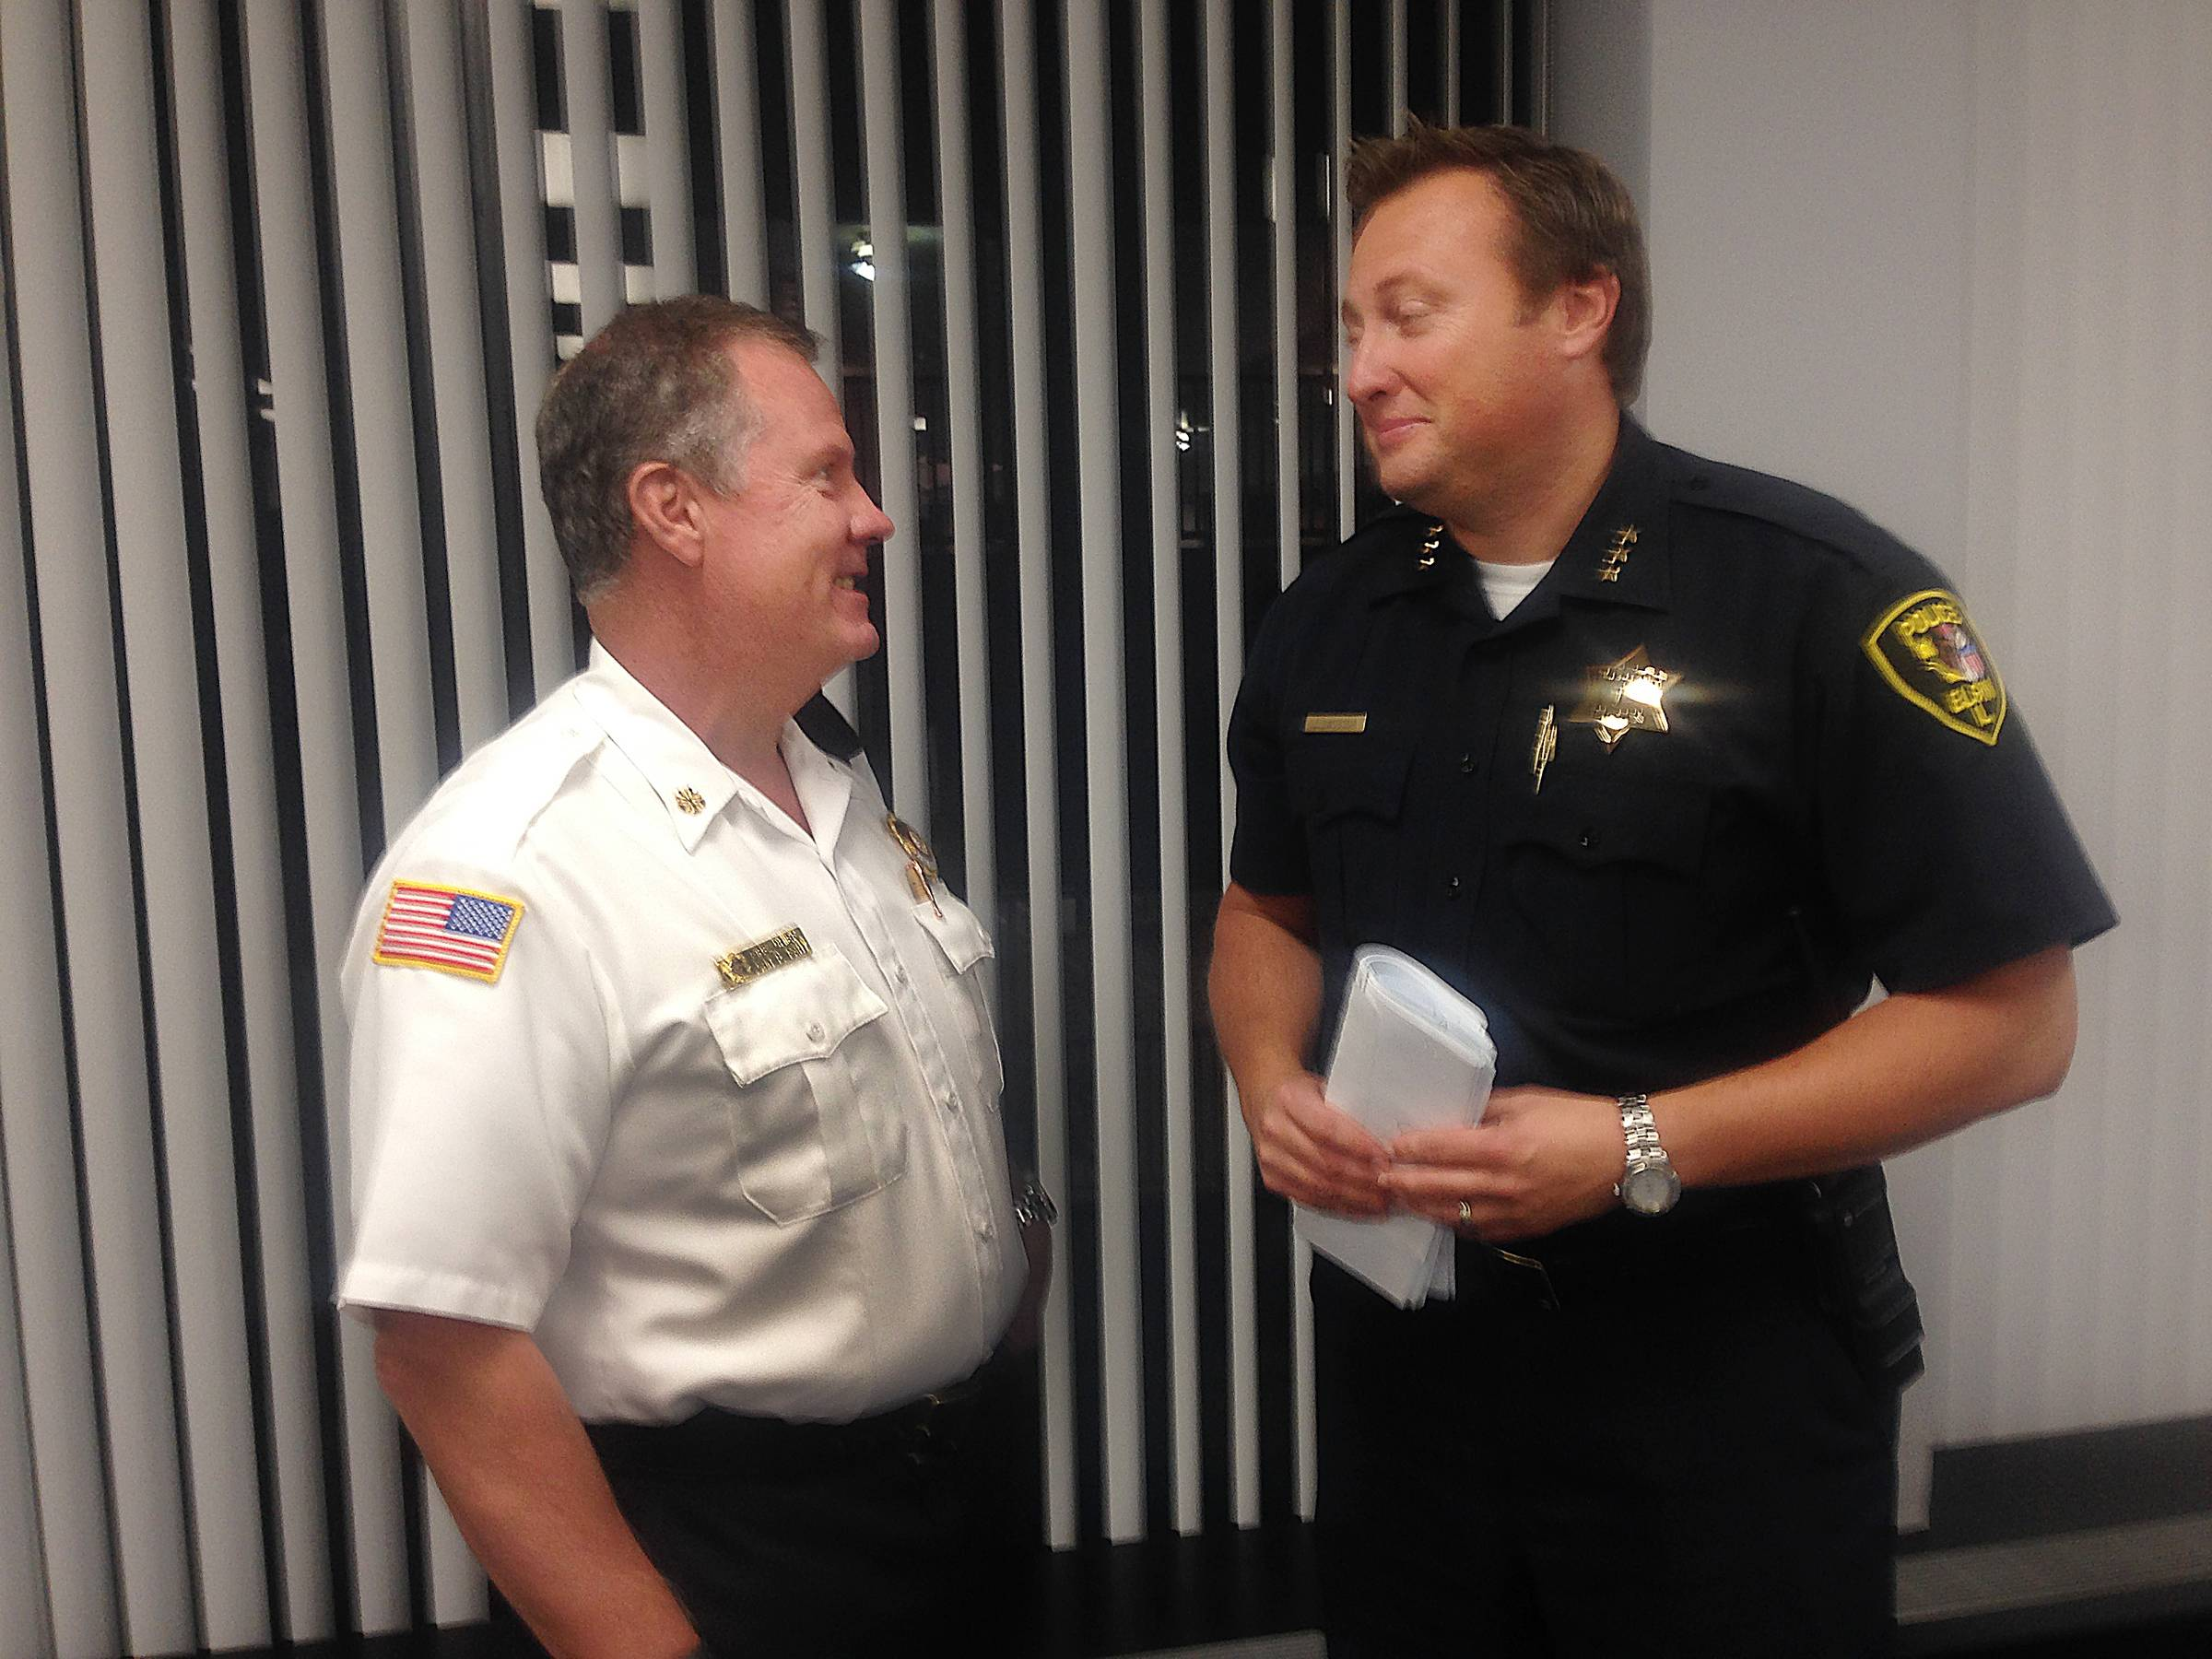 Elgin Fire Chief John Fahy, left, and Elgin Police Chief Jeff Swoboda will become members of the city's board of fire and police commissioners if the Elgin City Council finalizes its preliminary decision made Wednesday night.